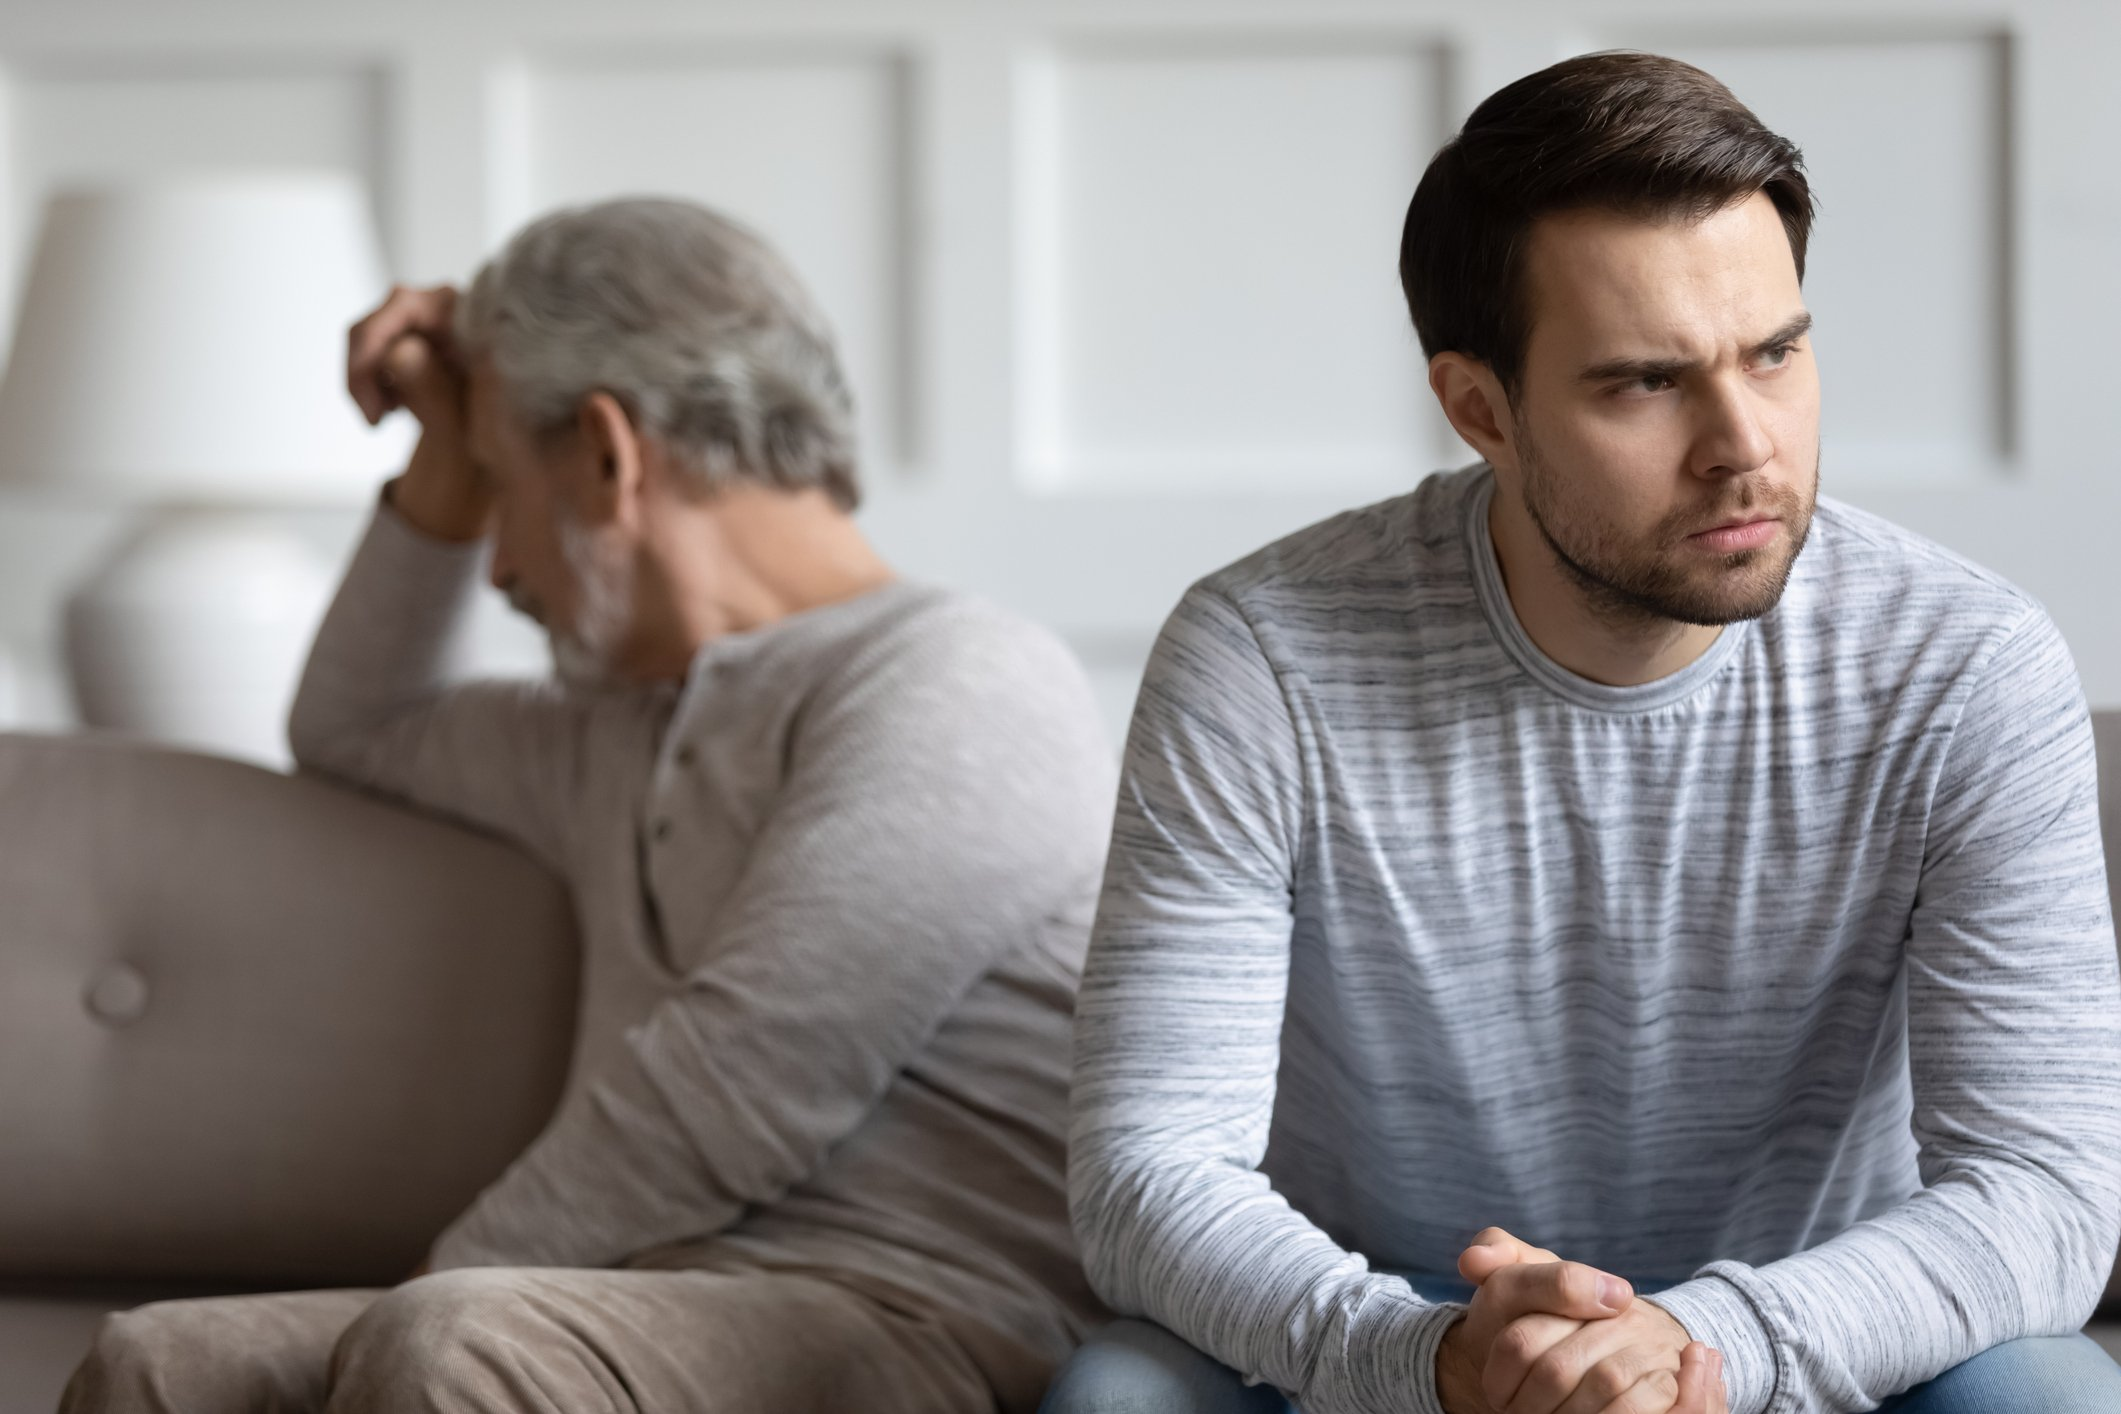 Father and son refuse to talk after a heated argument | Photo: Getty Images